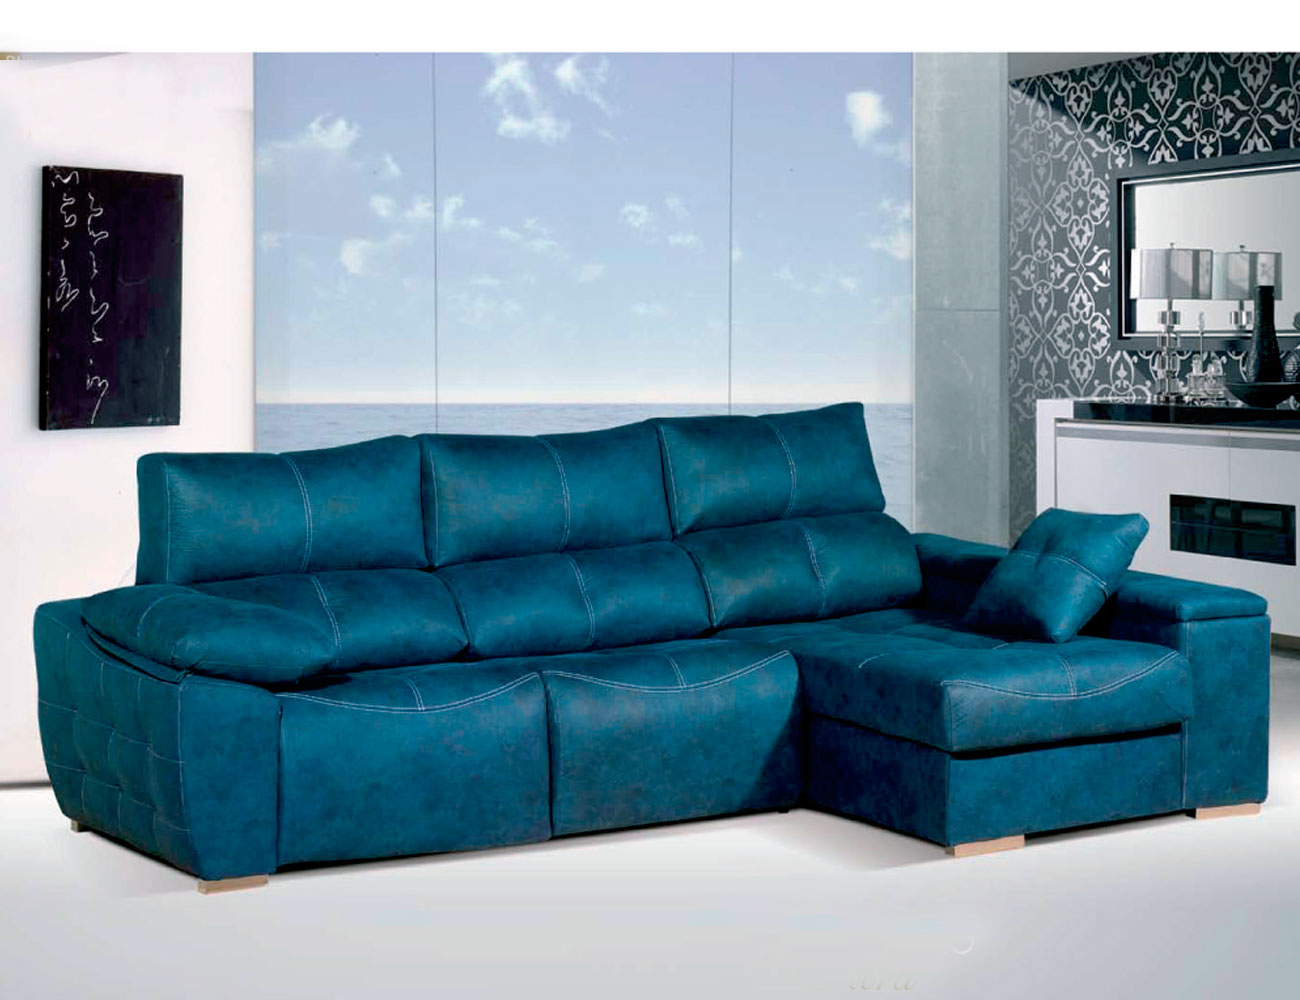 Sofa chaiselongue relax 2 motores anti manchas turquesa9